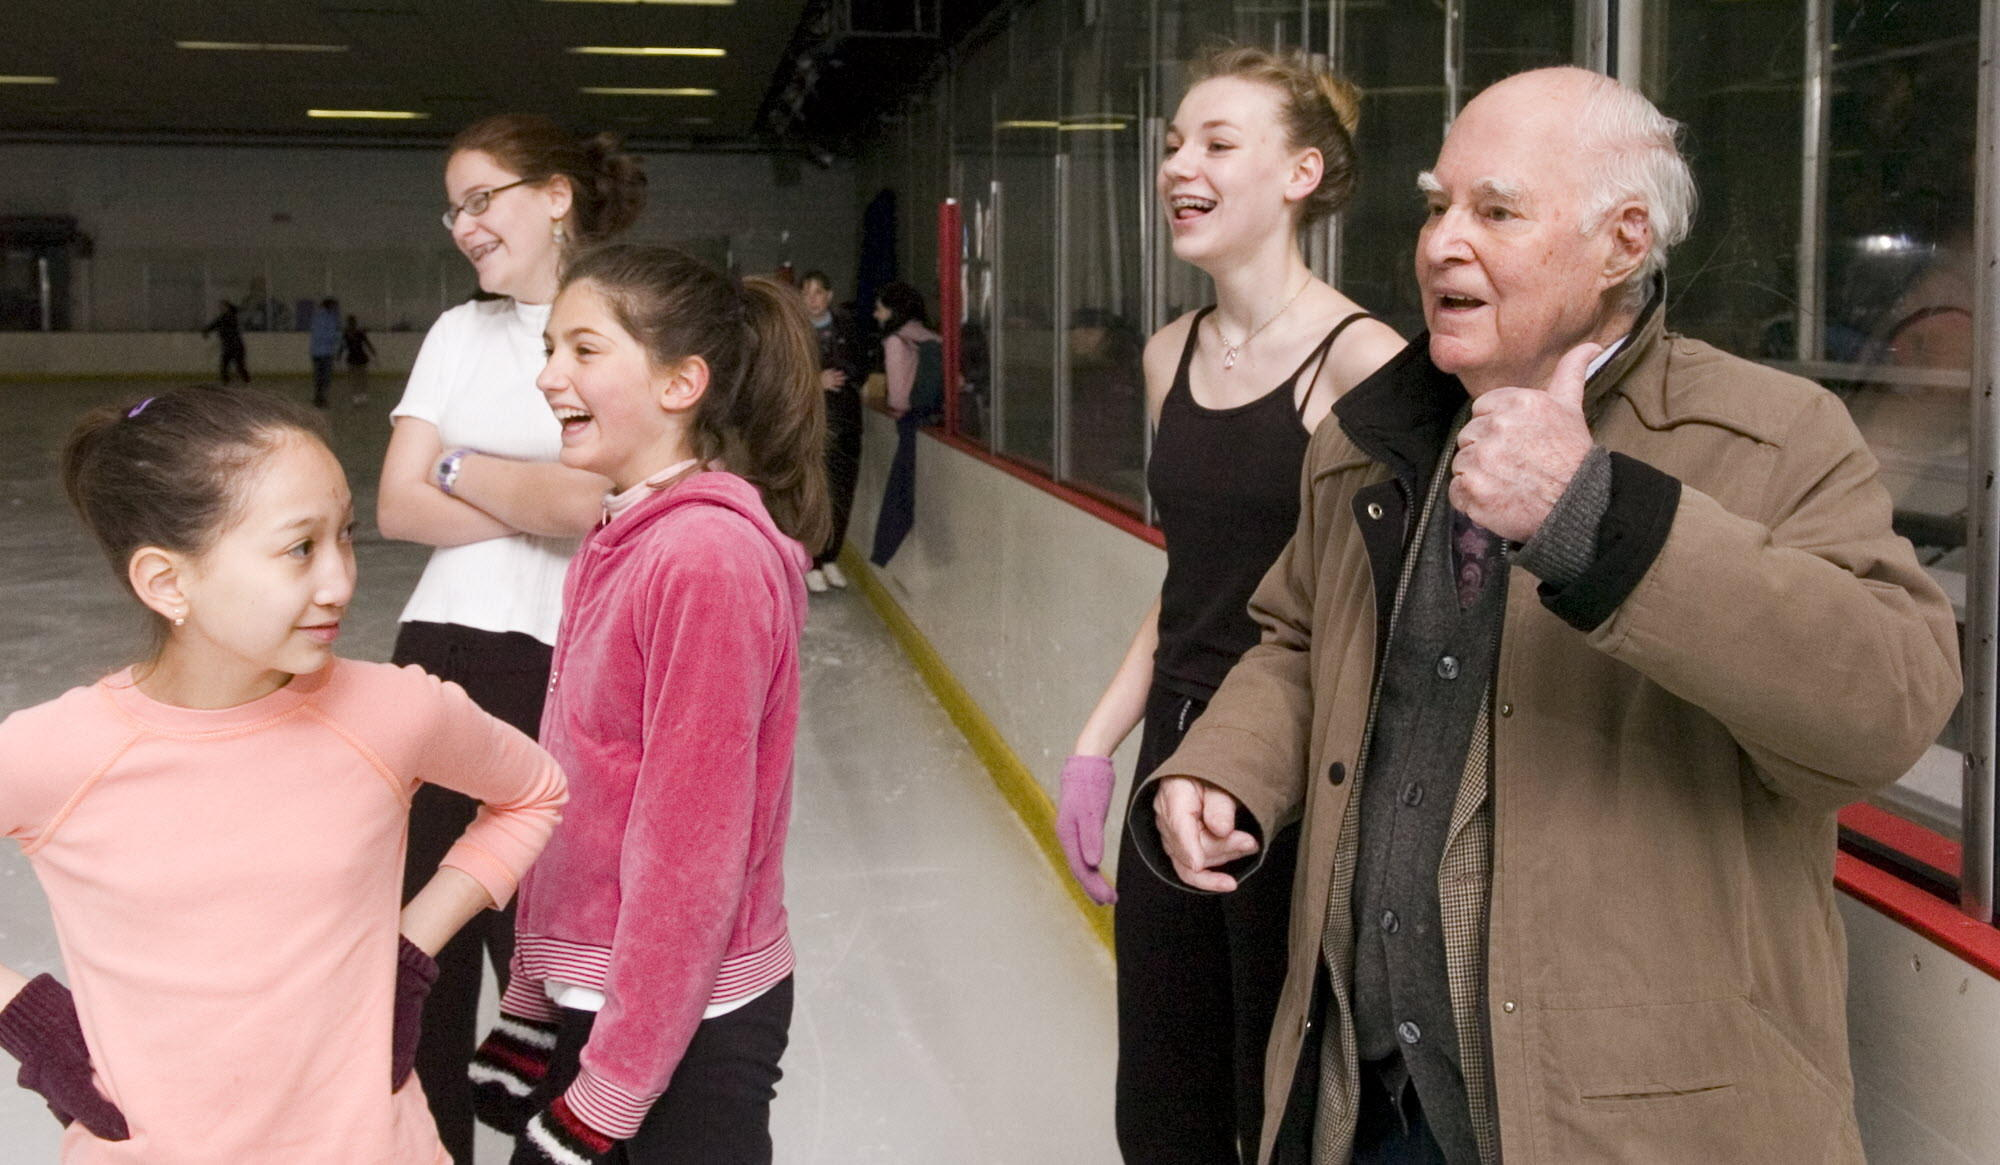 Robert Ogilvie, right, teaches footwork during a figure skating class in April 2006. Ogilvie, 97, died Nov. 18, and a memorial service will be held for him Friday.